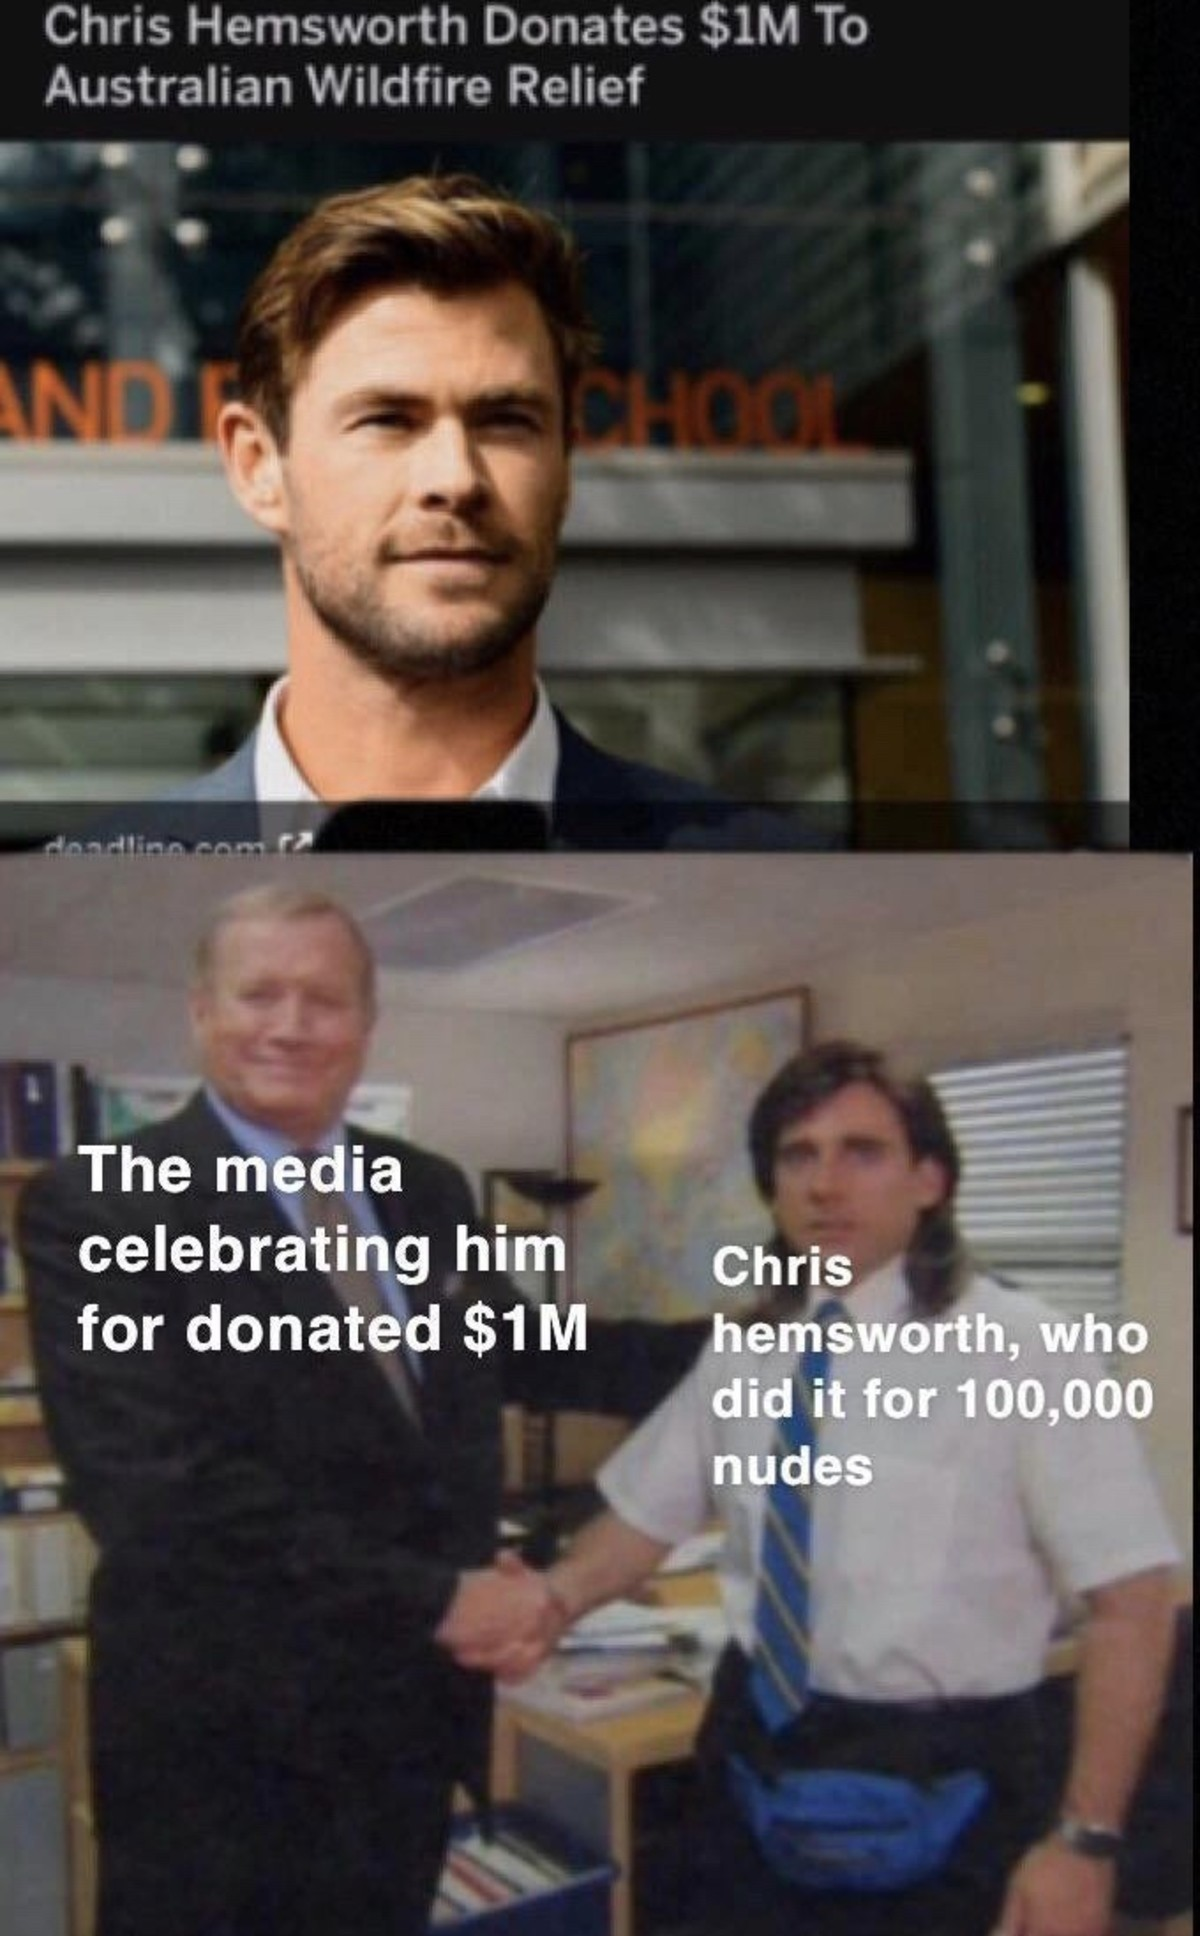 chris. .. If anyone's unaware, there was a chick posting nudes for 10 bucks each, and literally raised up to a million dollars to the fire service.